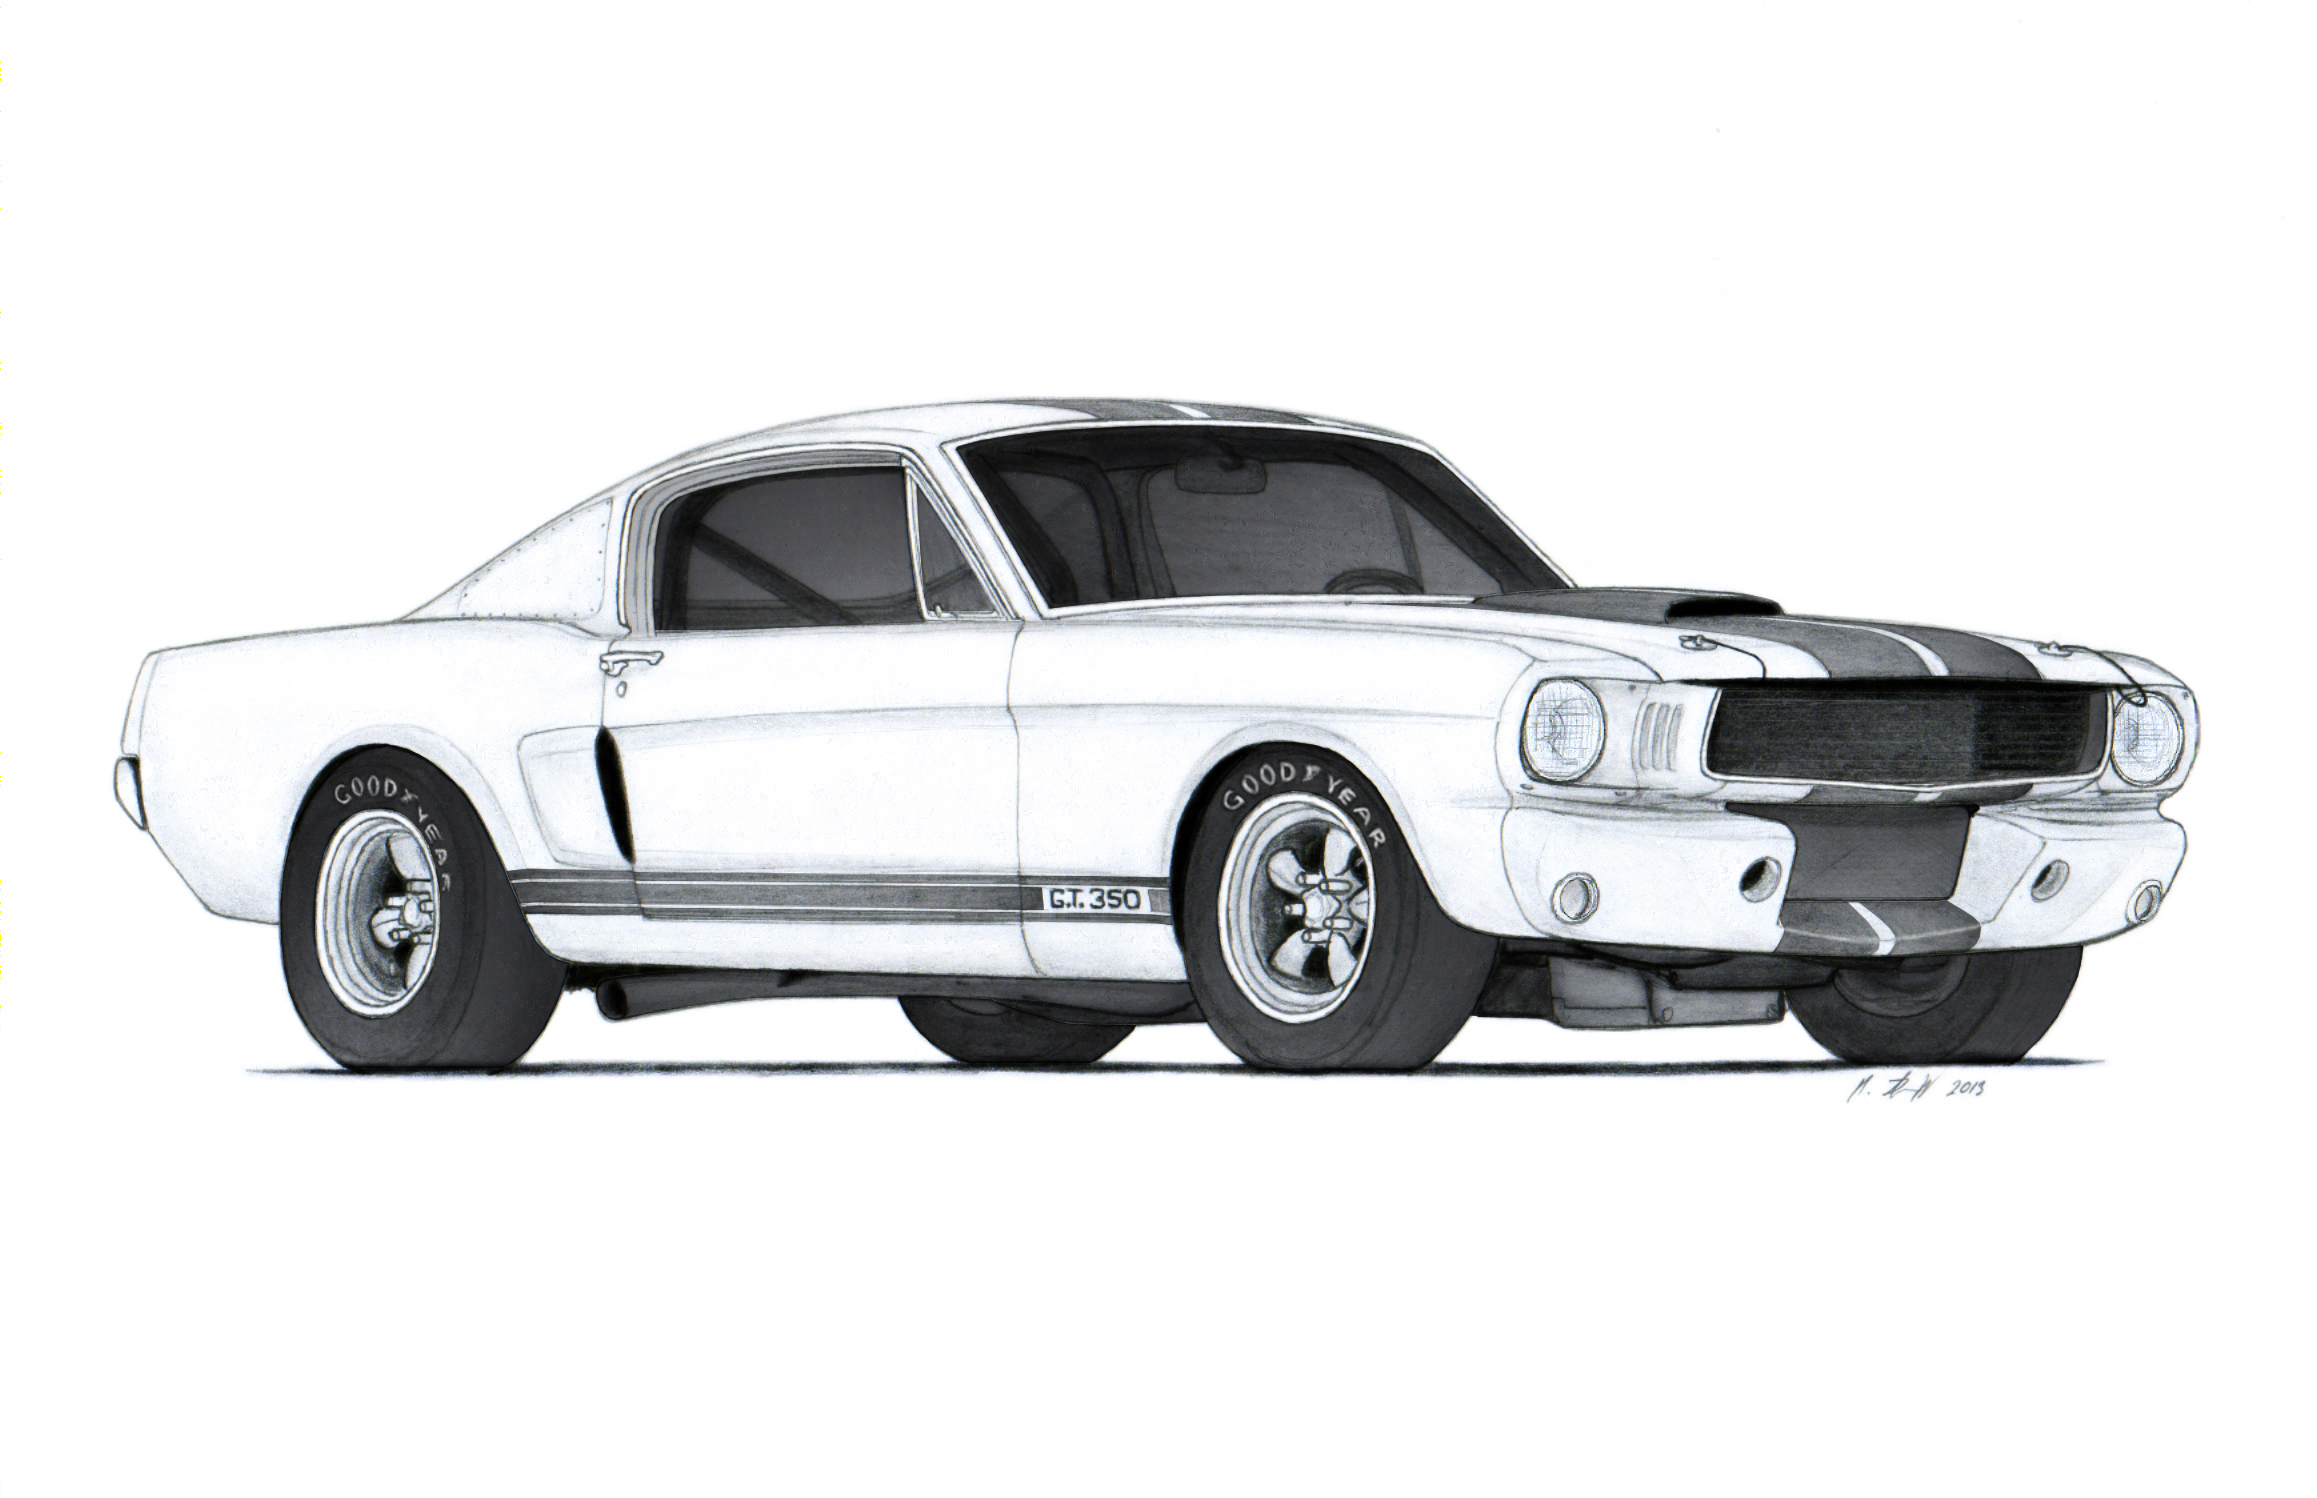 1966 ford mustang shelby gt350r drawing by vertualissimo. Black Bedroom Furniture Sets. Home Design Ideas